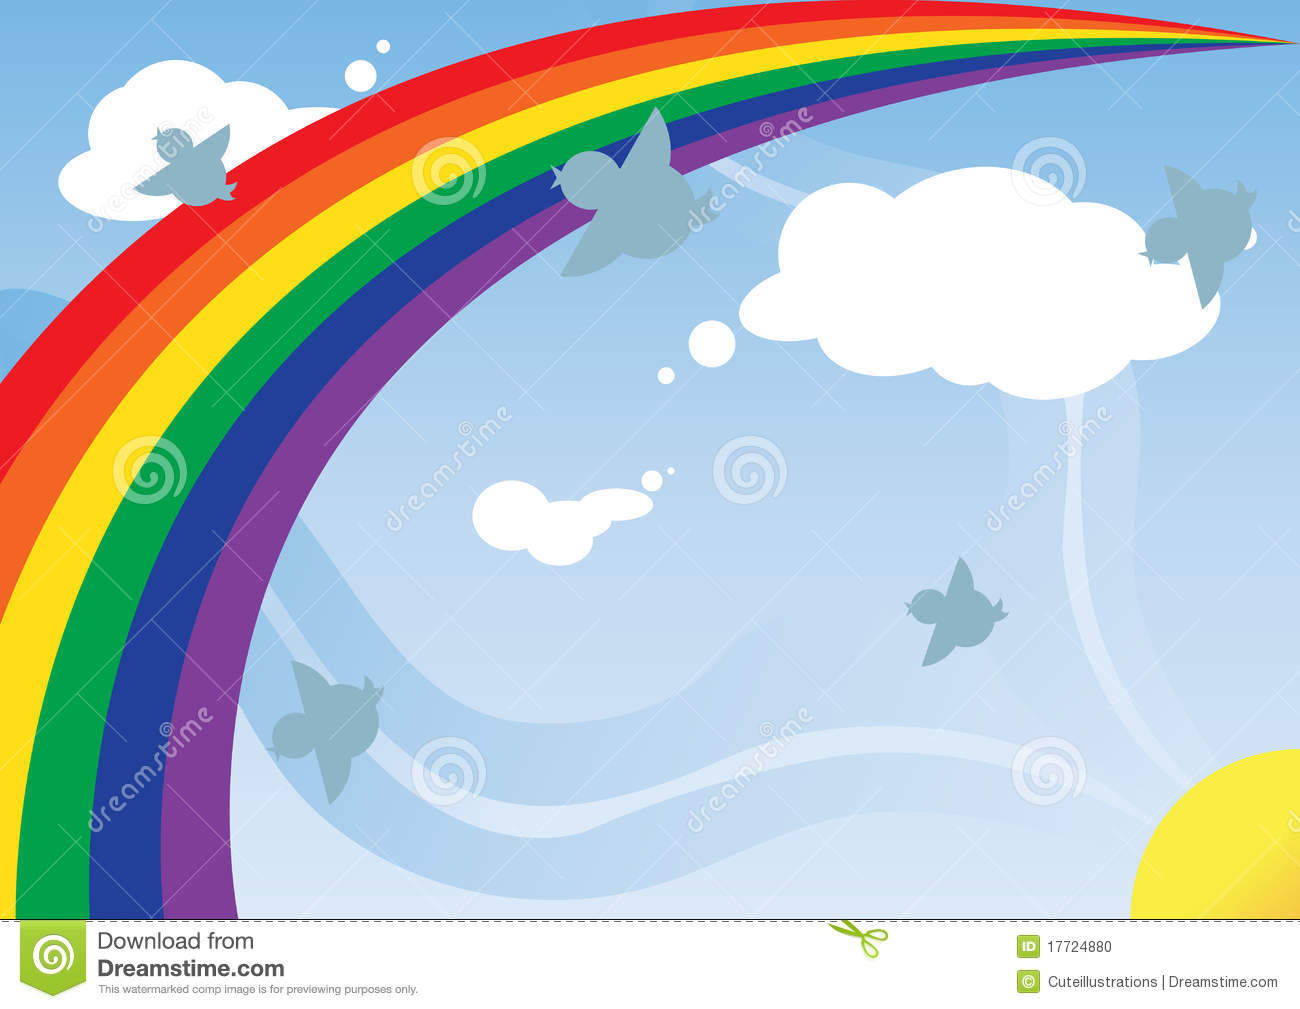 Rainbow Background Stock Photo - Image: 17724880